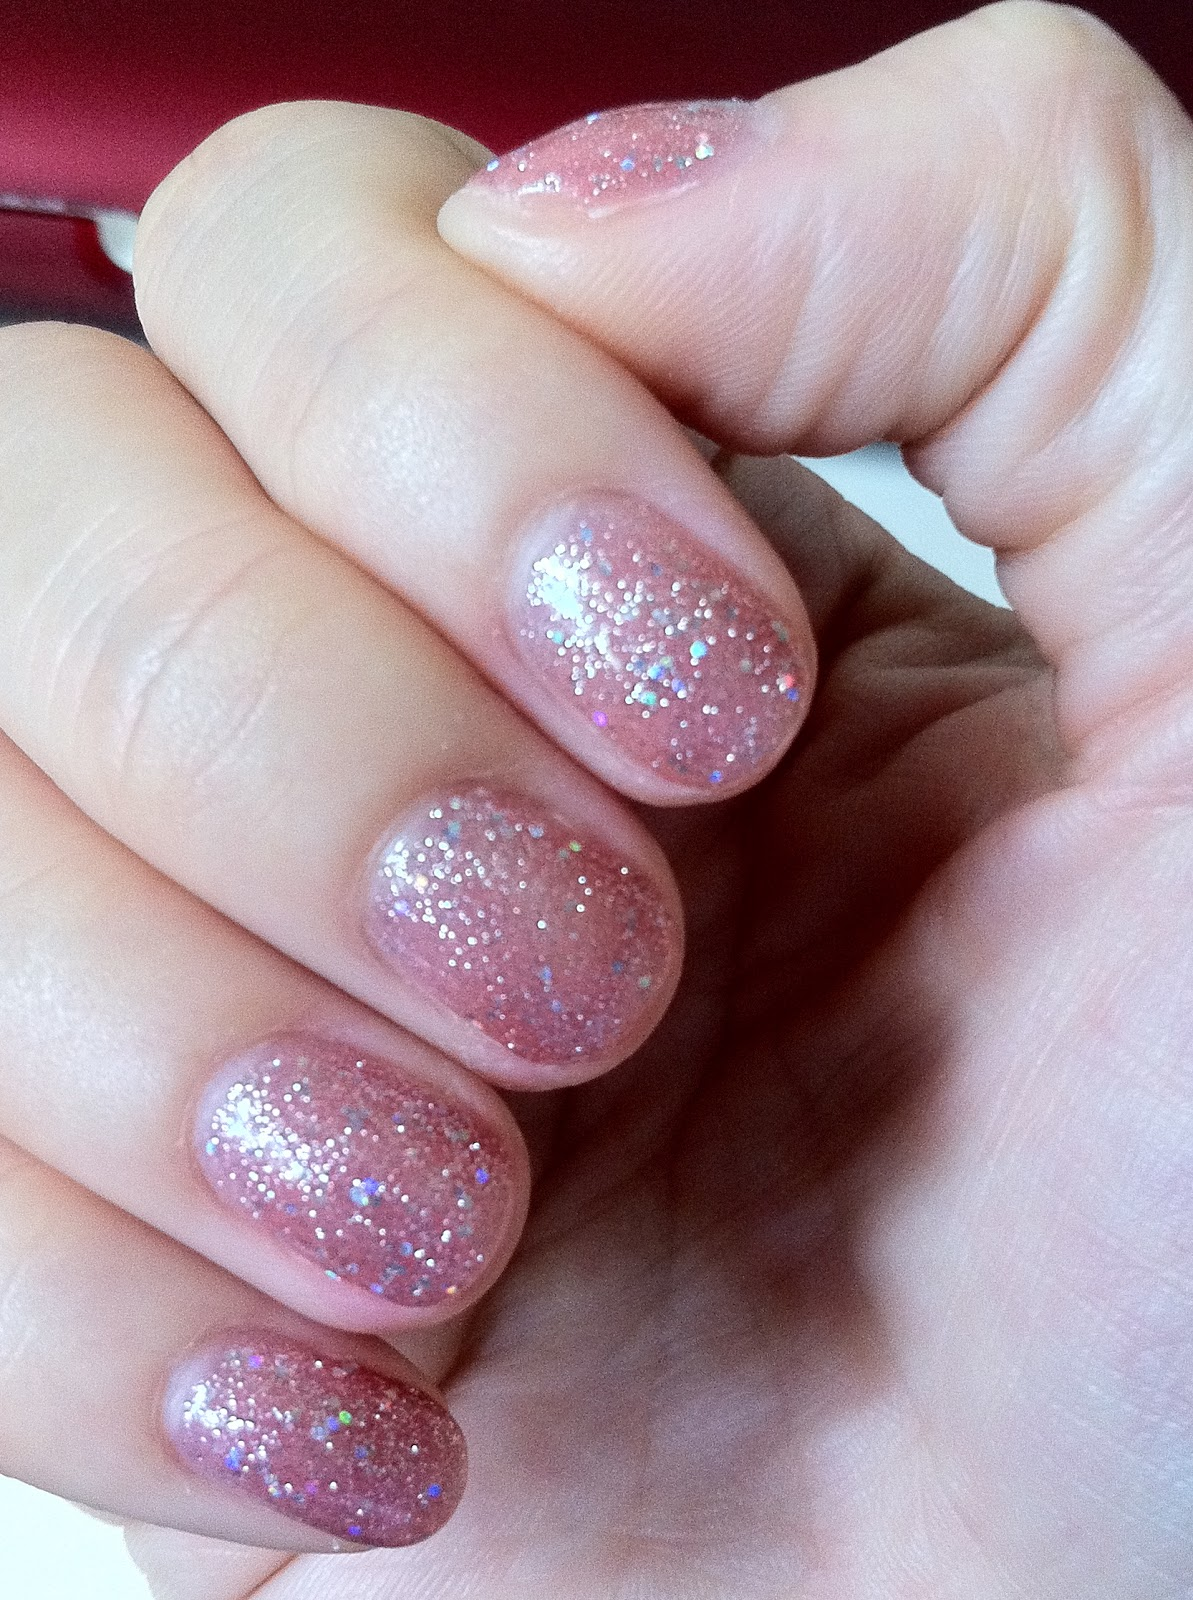 The Clover Beauty Inn: NOTD: Gelish June Bride